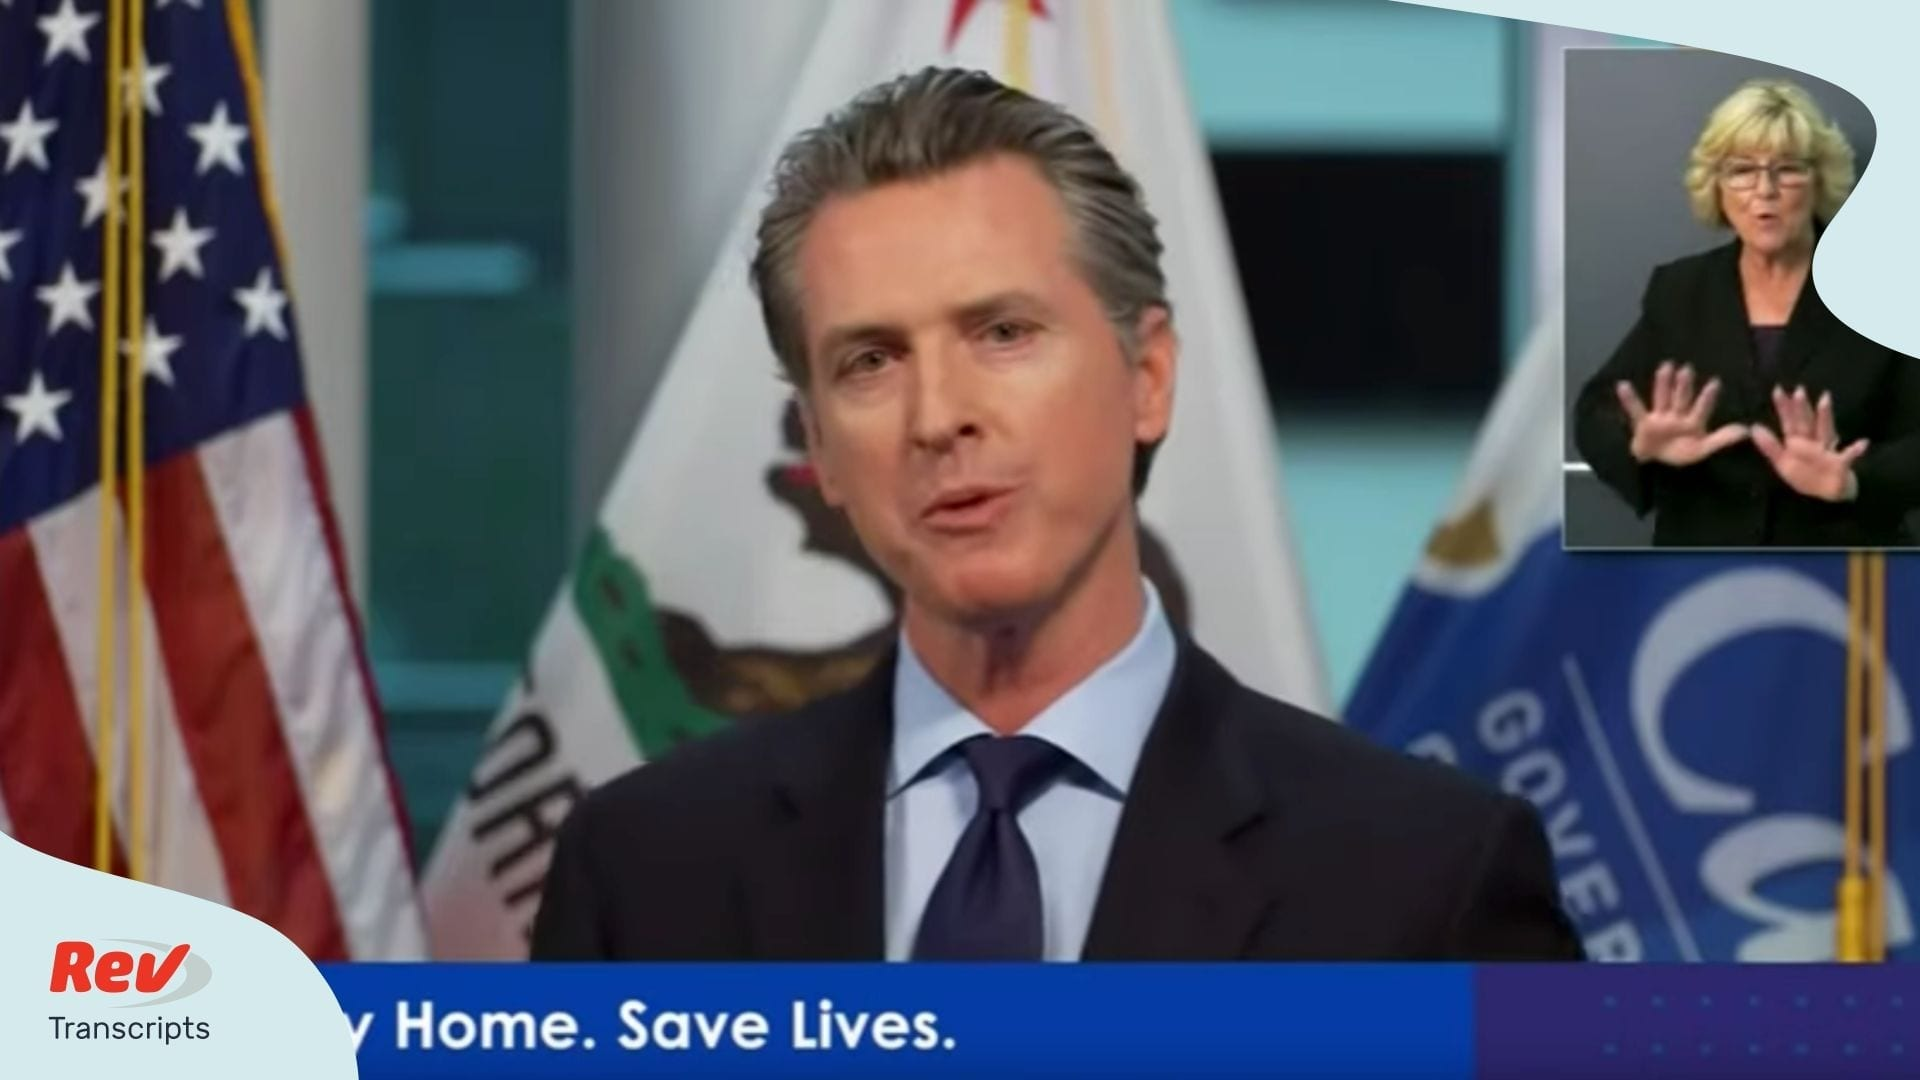 Gavin Newsom Transcript April 8